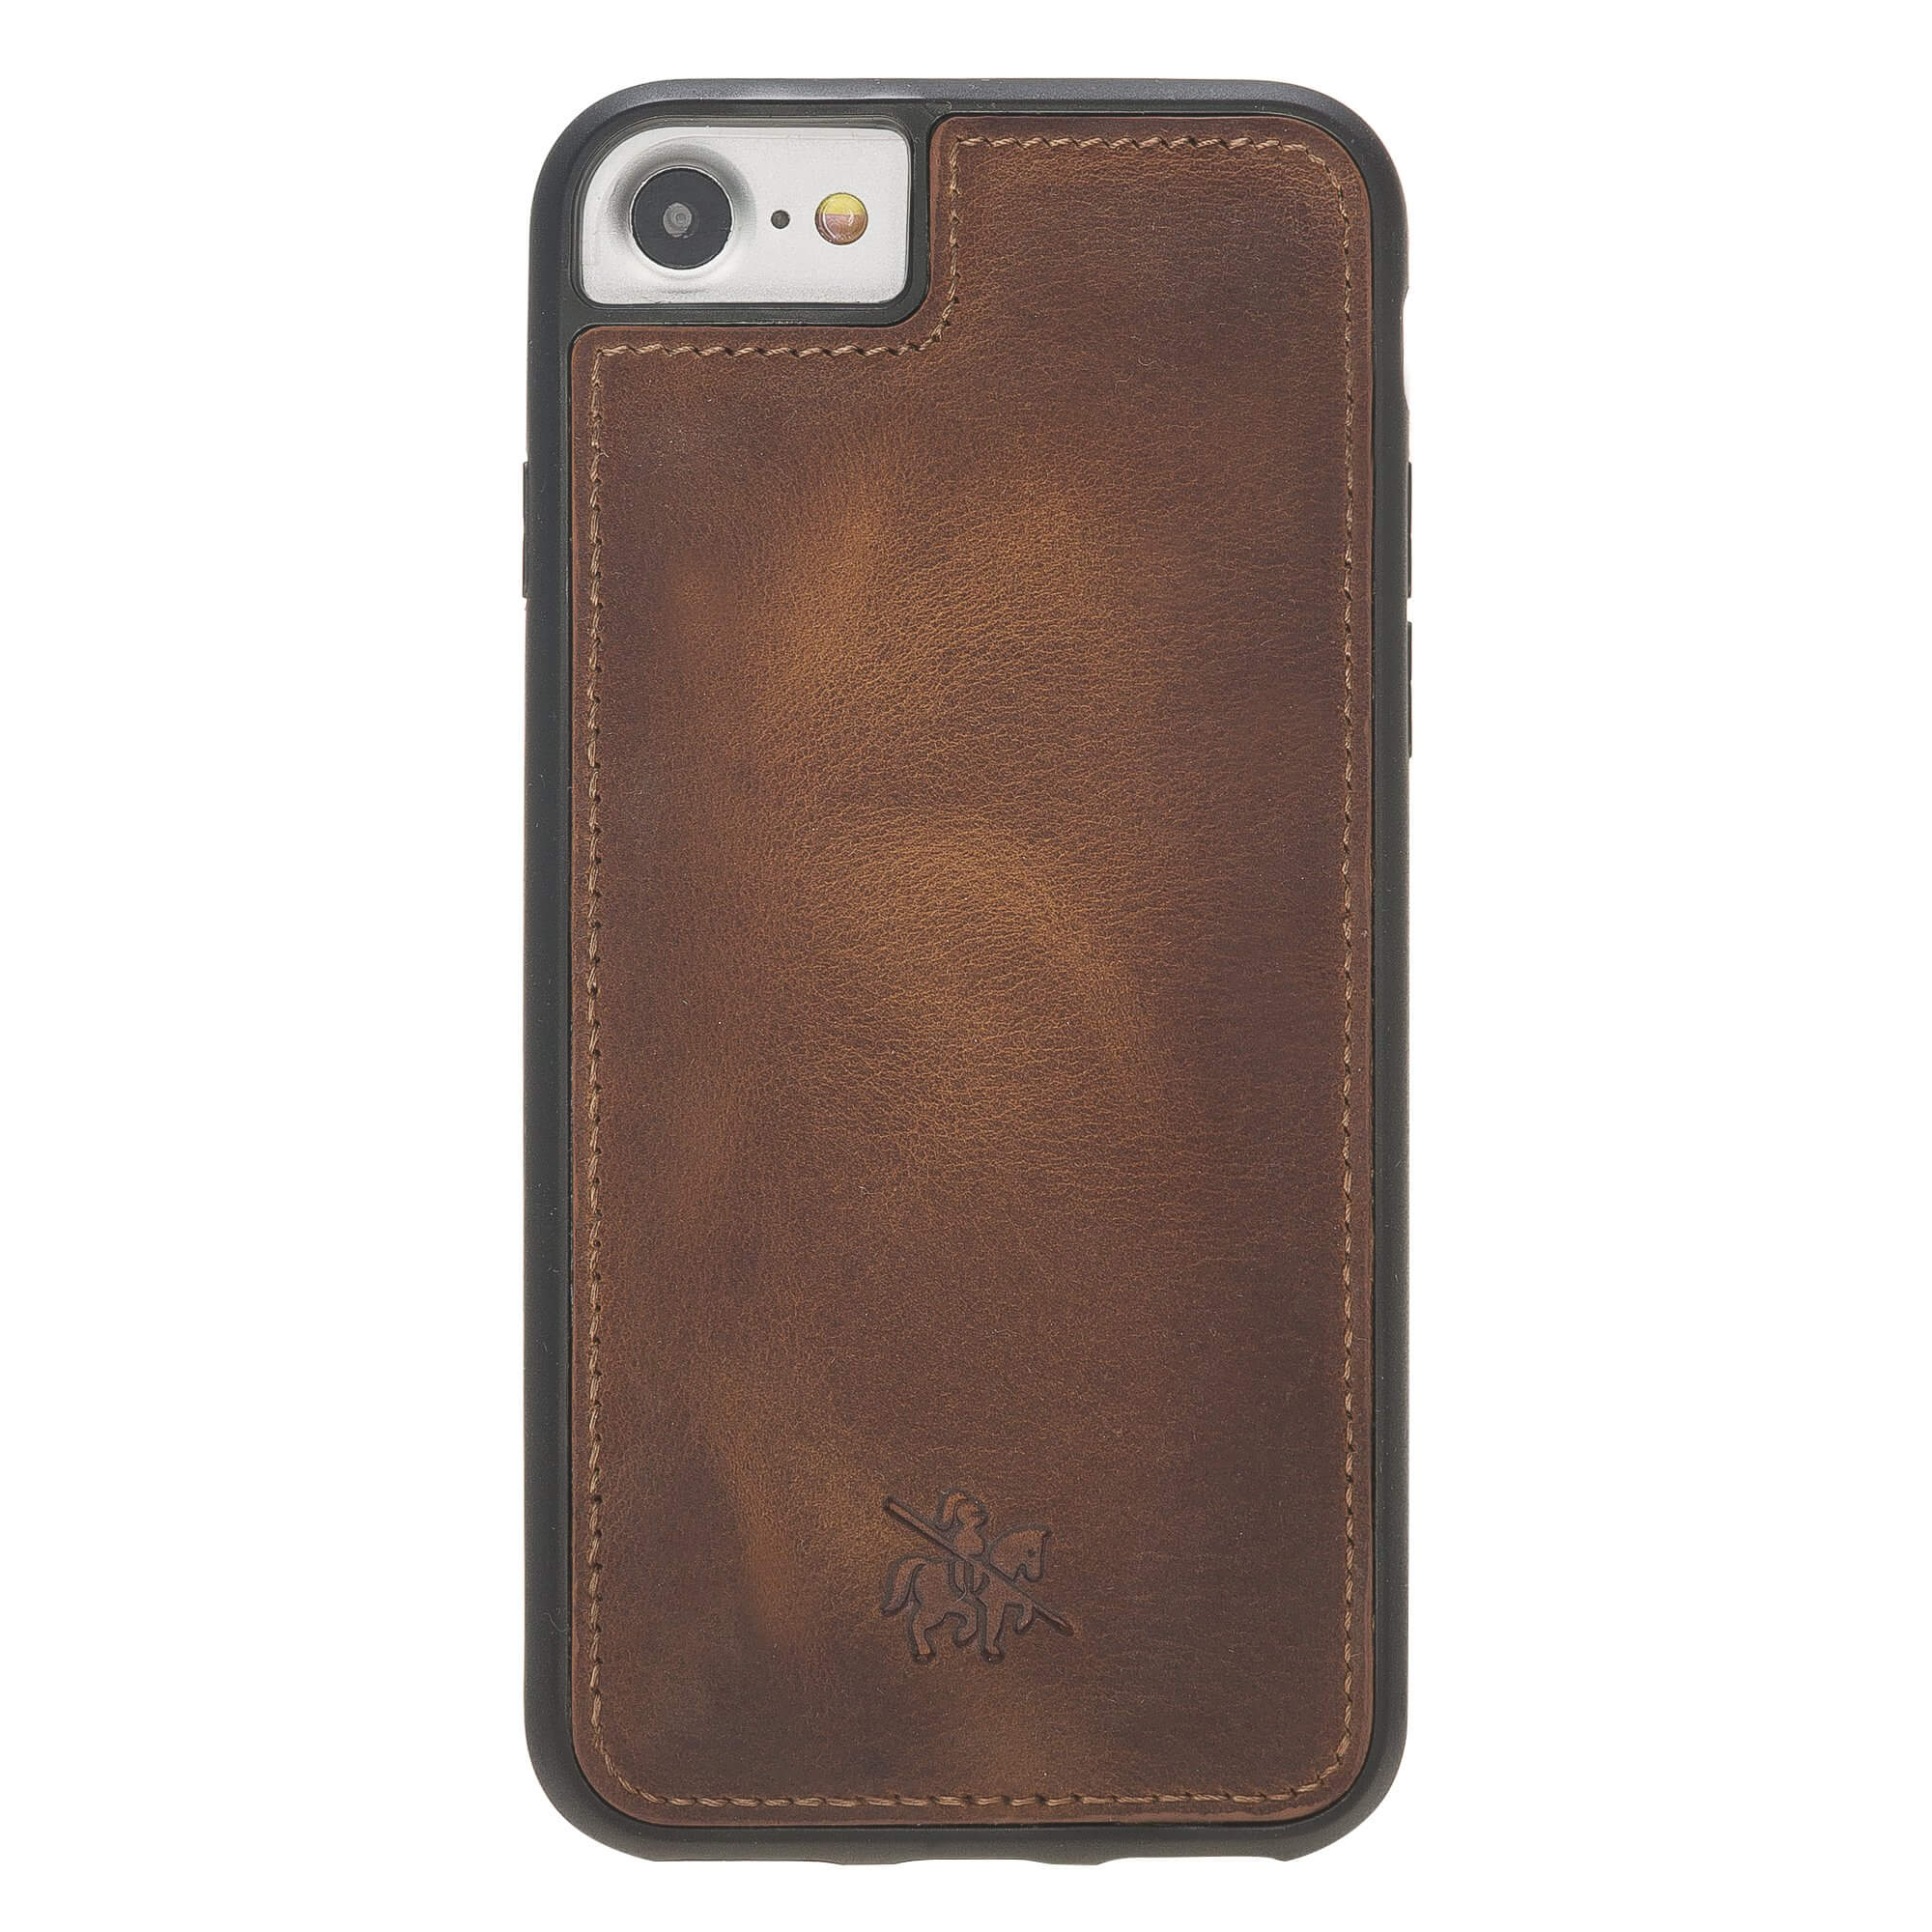 Lucca Snap On Leather Case for iPhone 7